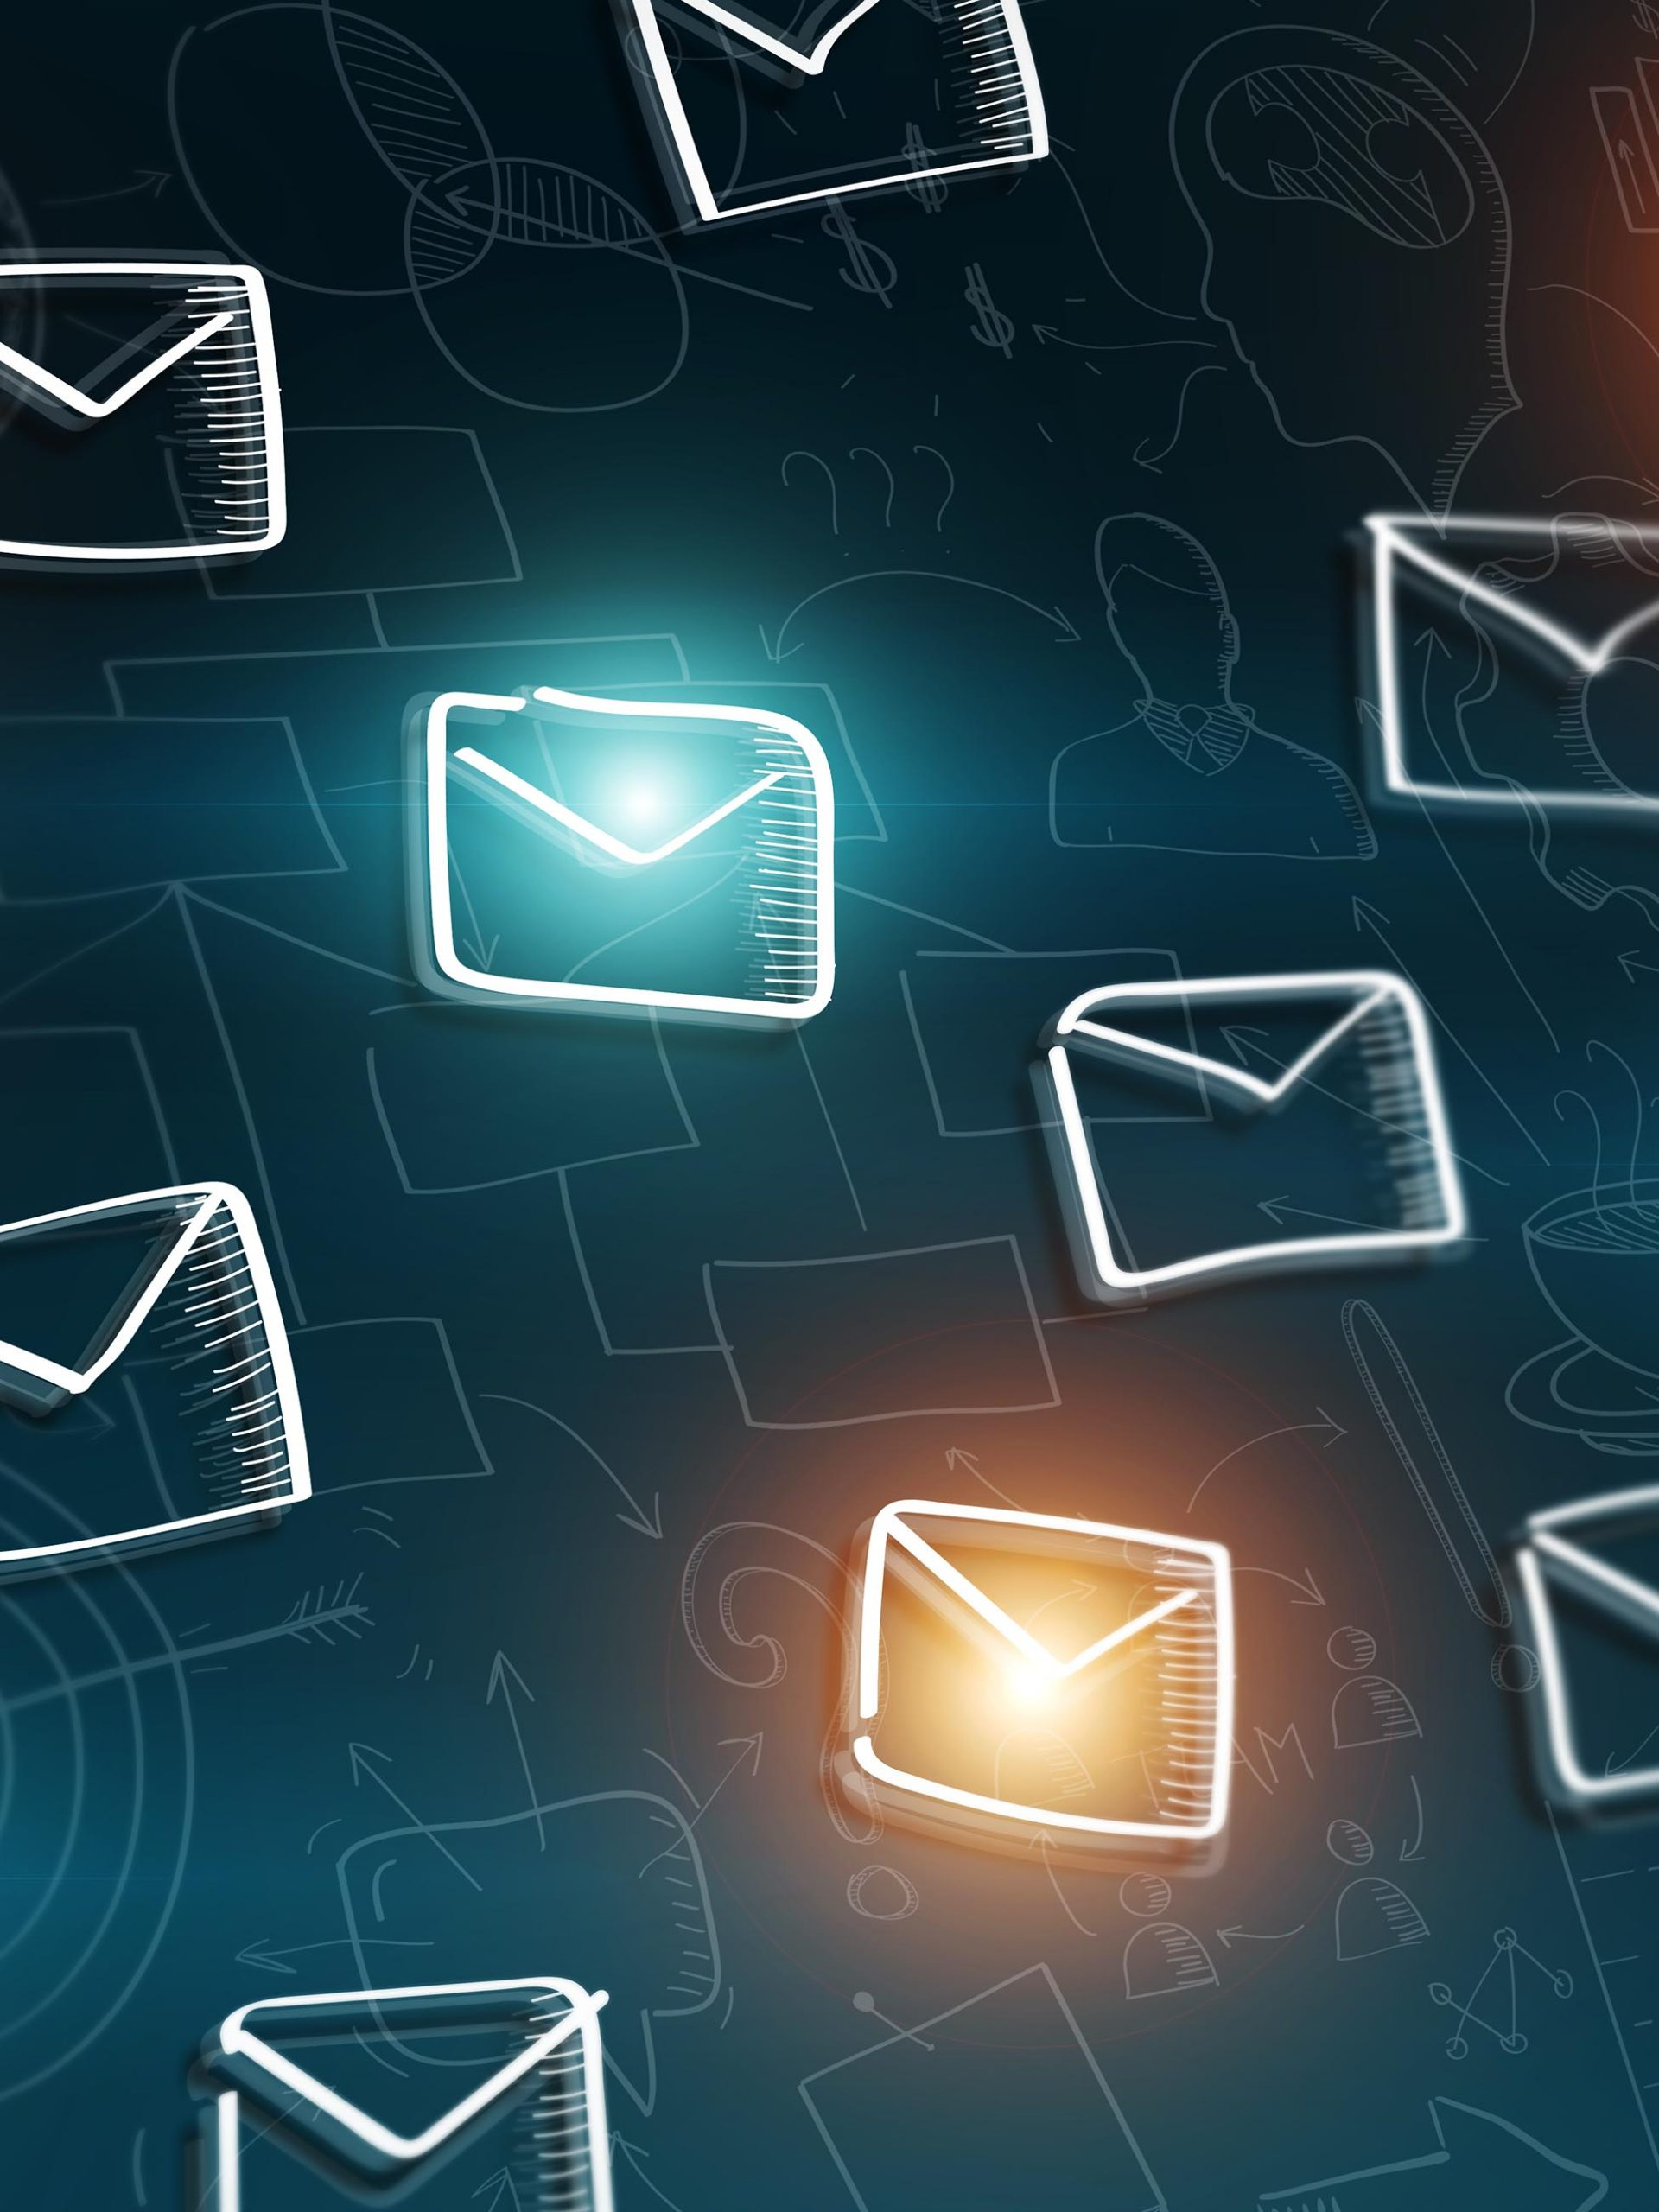 email icons flying around representing email marketing automation